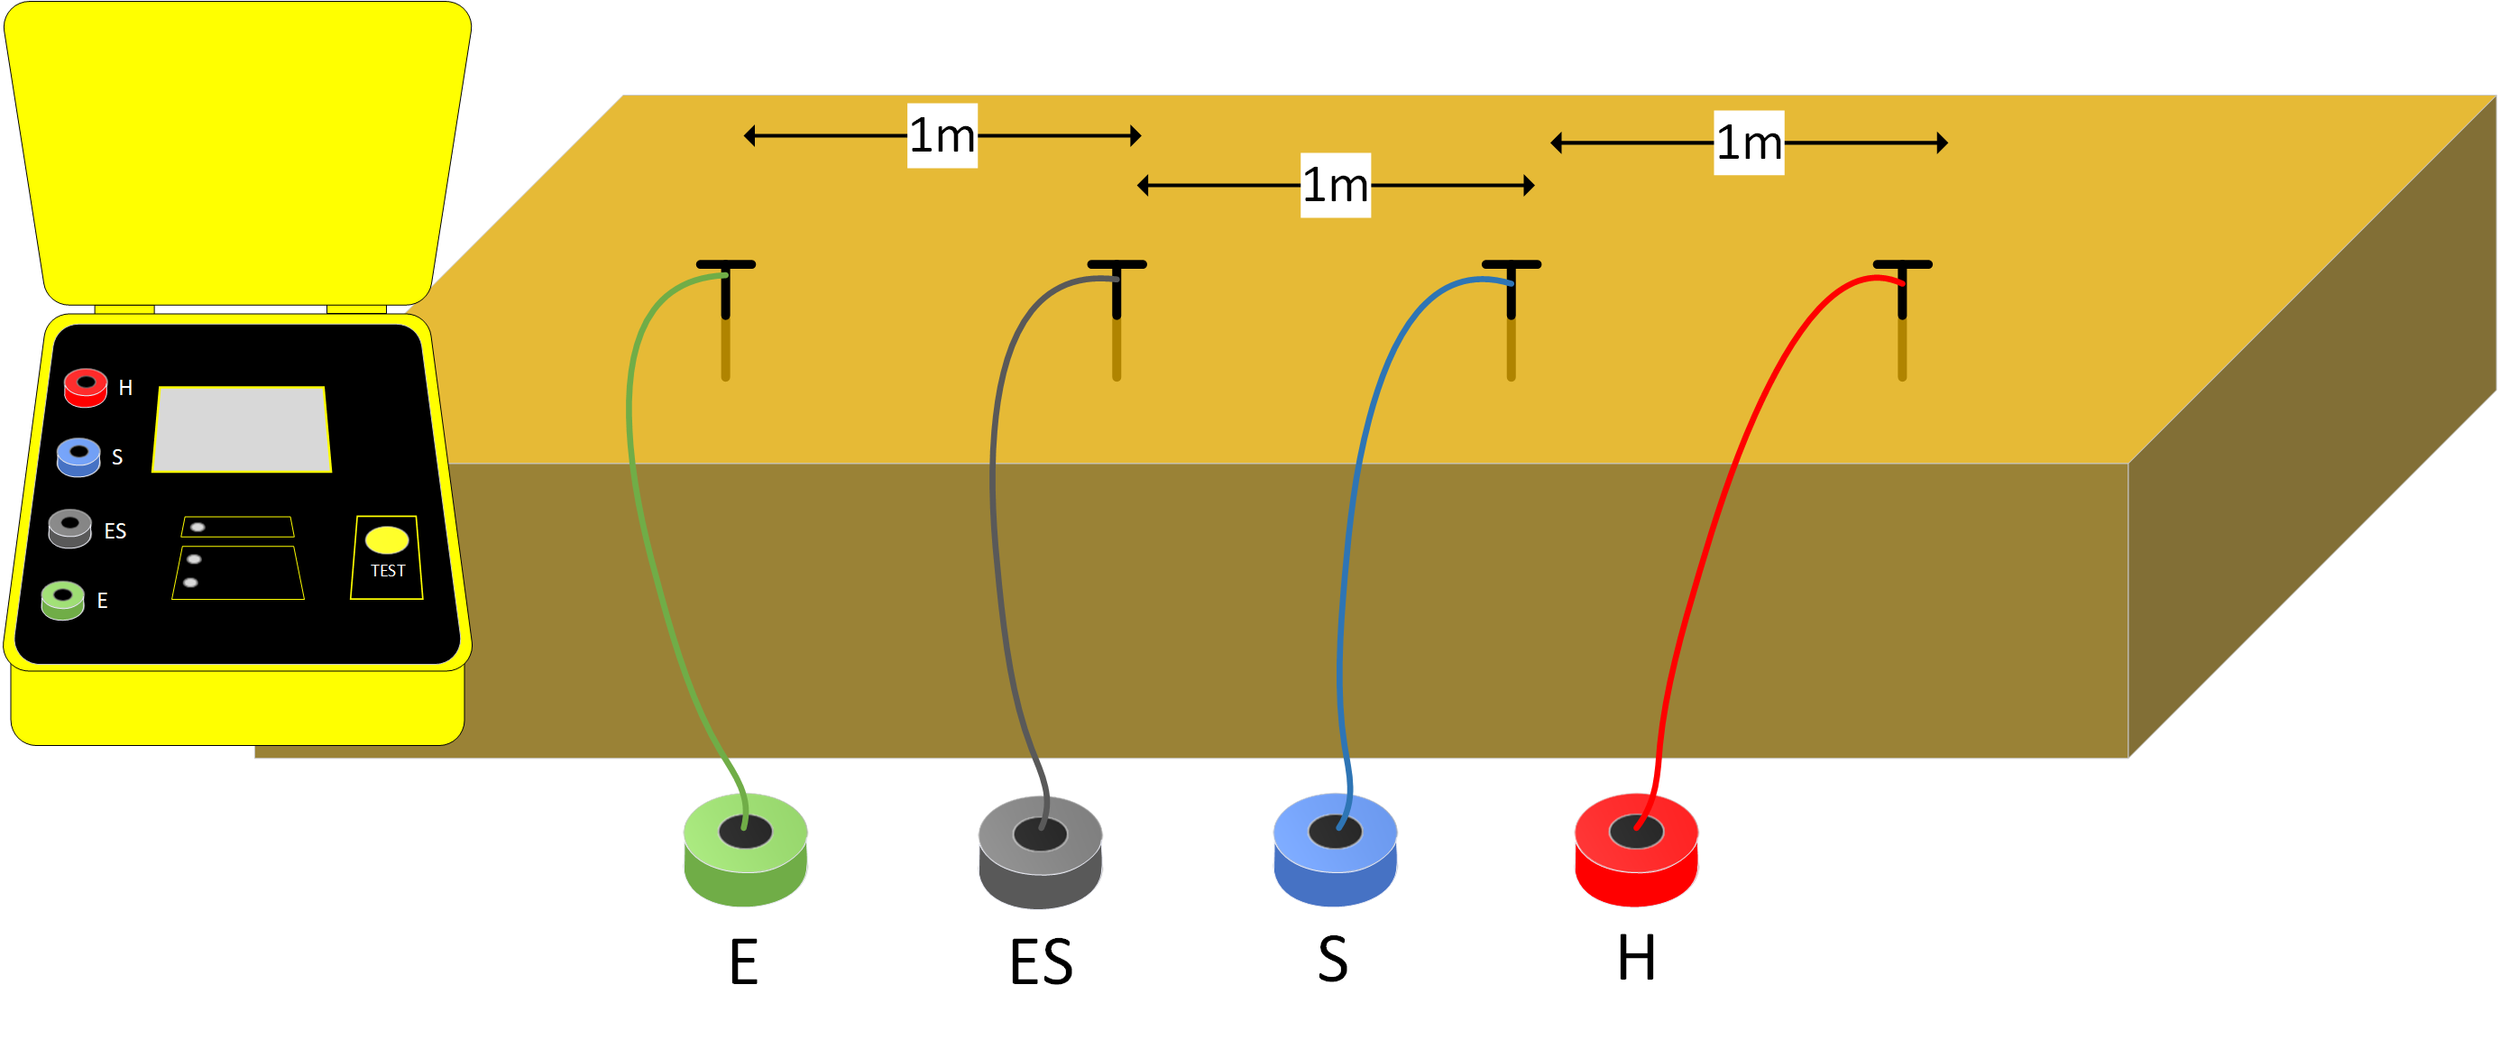 Figure 2. Soil resistivity measuring equipment set-up